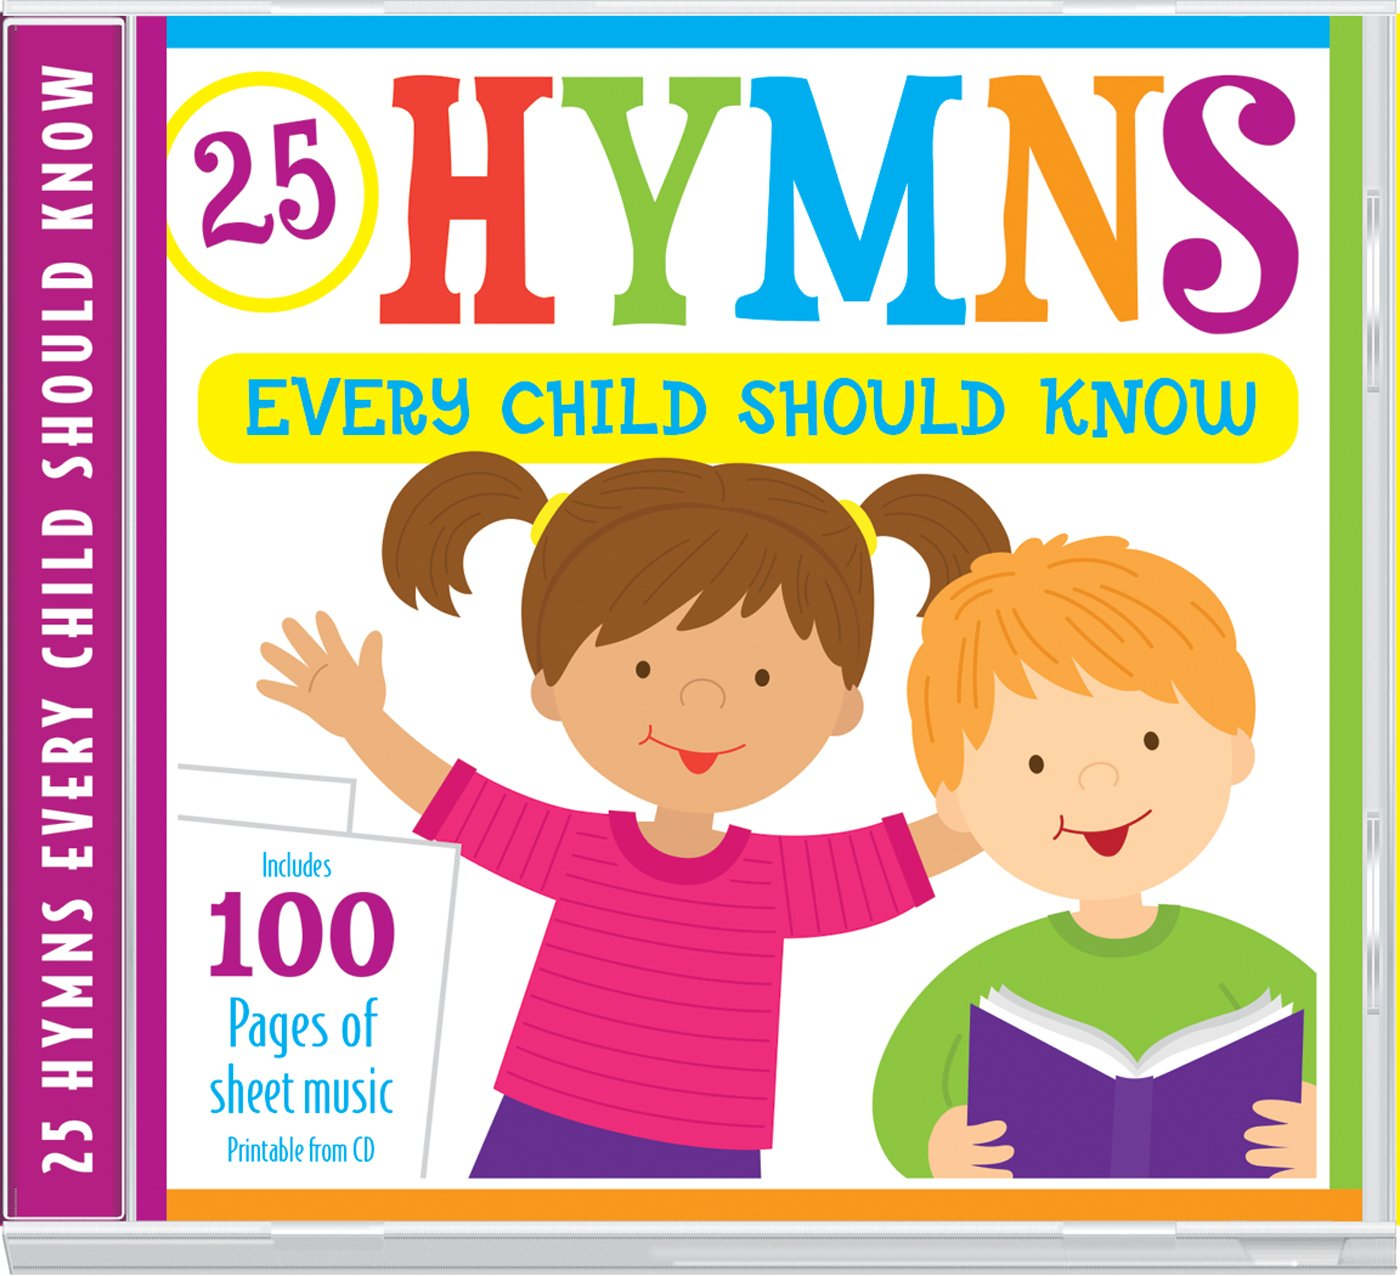 picture relating to Printable Hymns Sheet Music titled 25 Hymns Just about every Kid Ought to Comprehend: 25 Hymns Sung via Small children with